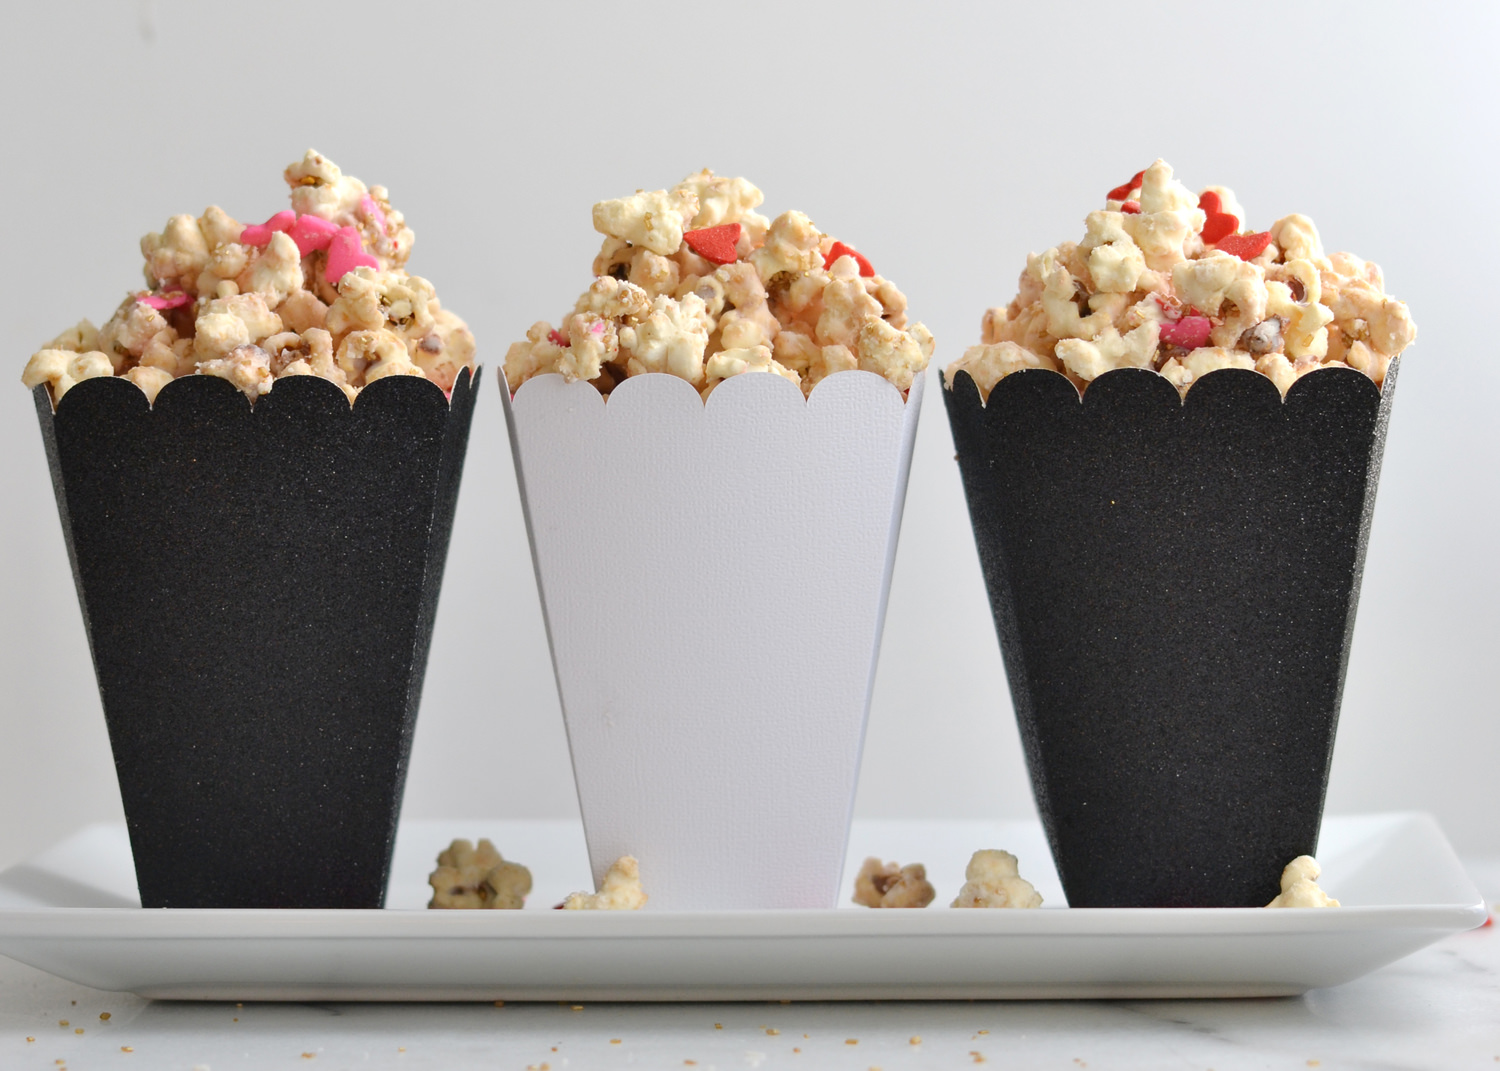 Valentine's Day sweetheart pink cream cheese popcorn gifts! What's better then pink popcorn for Valentine's Day? This popcorn recipe makes for the perfect, easy gift! www.boxwoodavenue.com | #pinkpopcorn #popcorngifts #cutegiftboxes